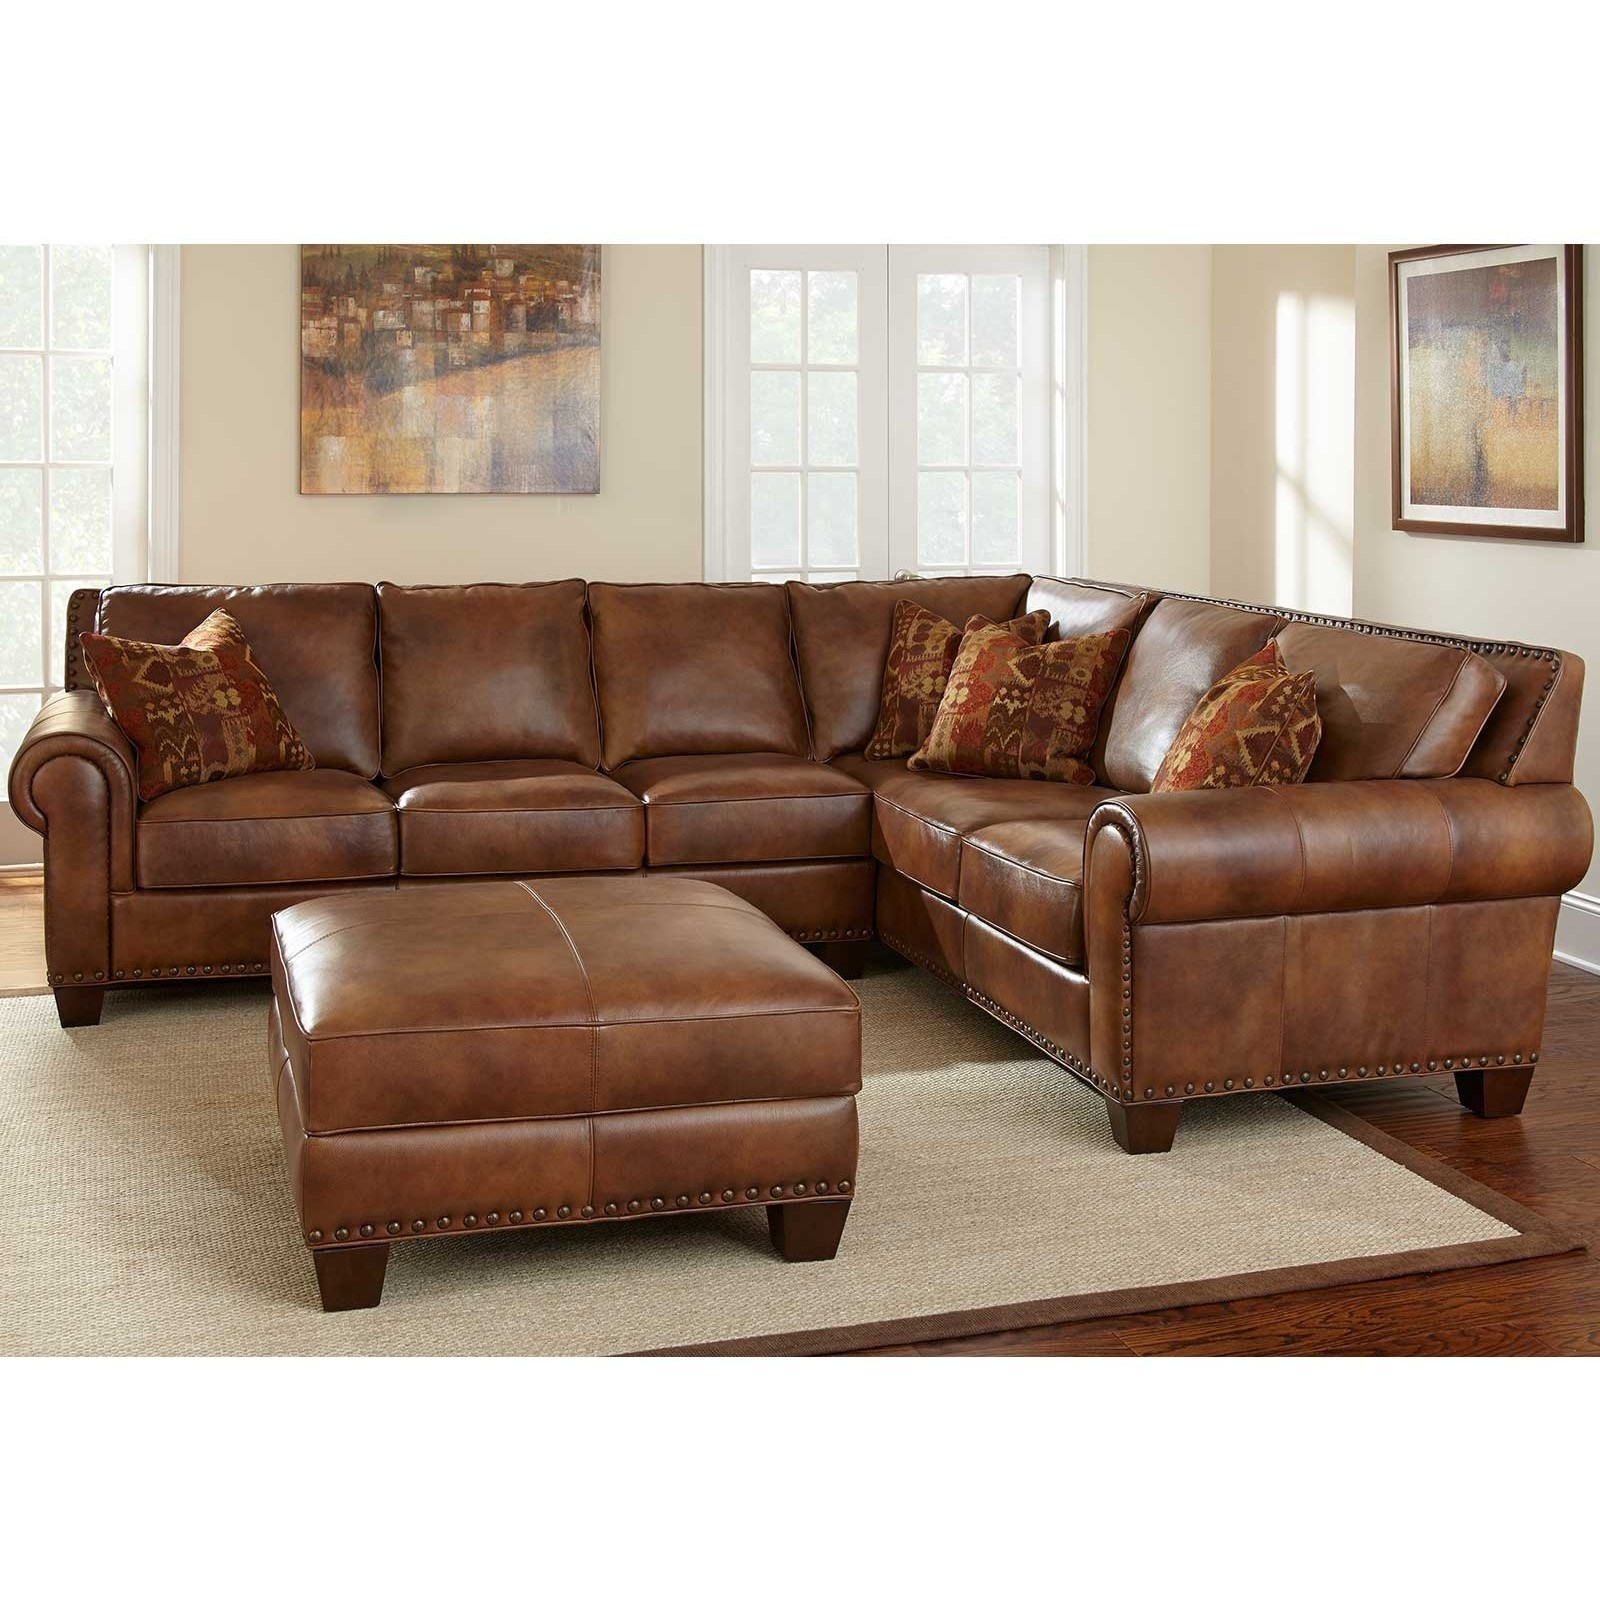 Sectional sofas for Sale Lovely Sectional sofa Design High End Leather Sectional sofas for Sale Picture